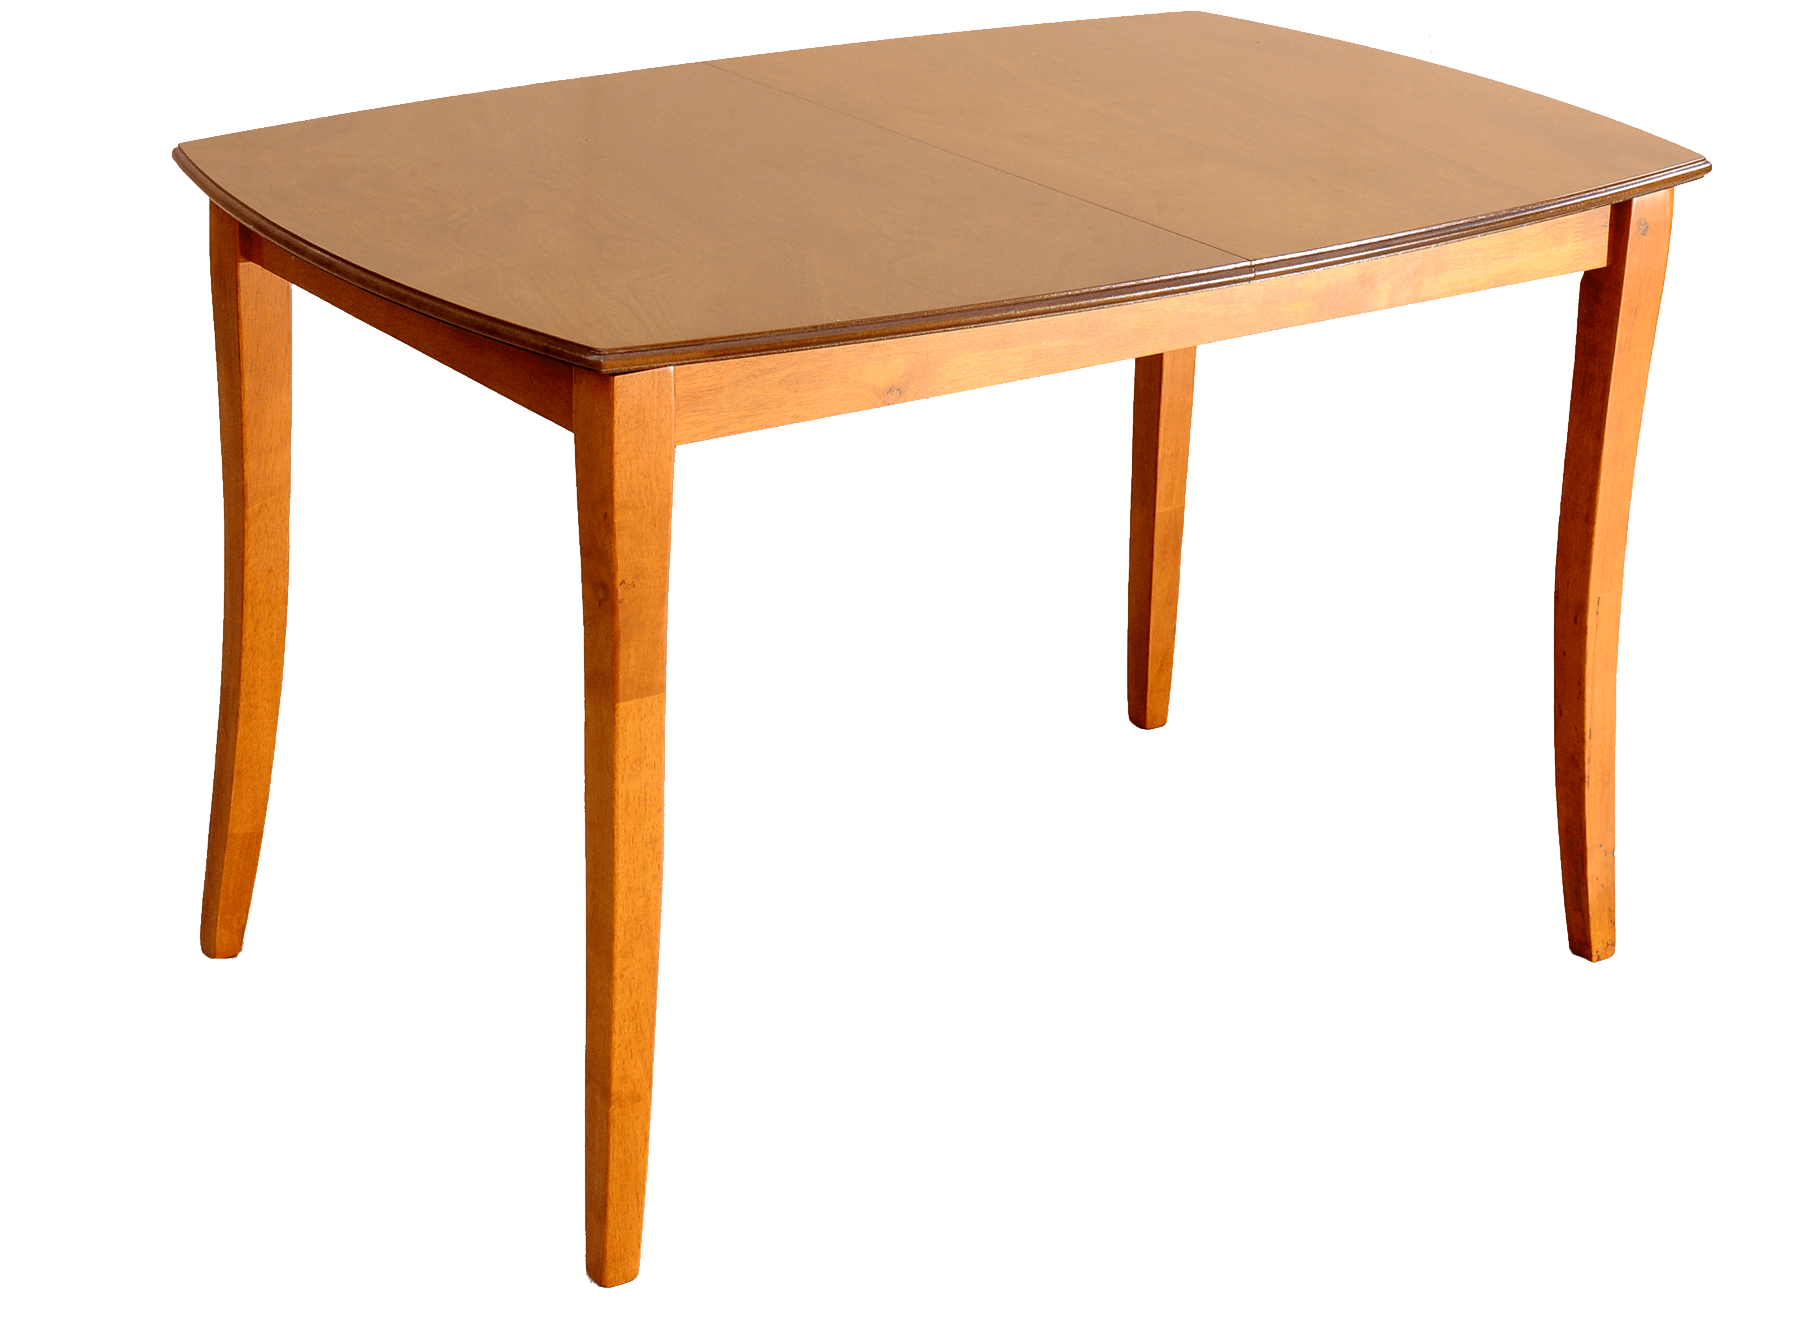 Download Wooden Table Png Image Hq Png Image Freepngimg Download 1743 table cliparts for free. download wooden table png image hq png